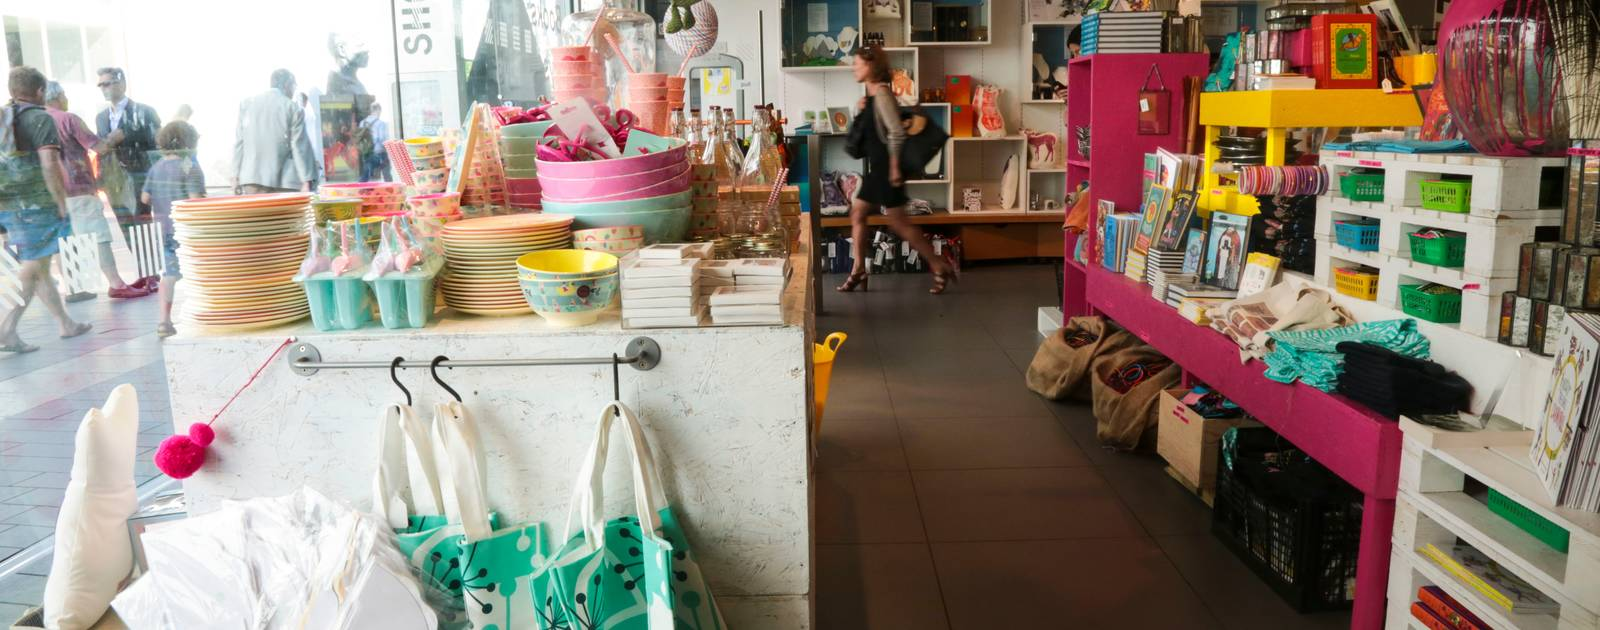 Customers at the Southbank Centre Shops